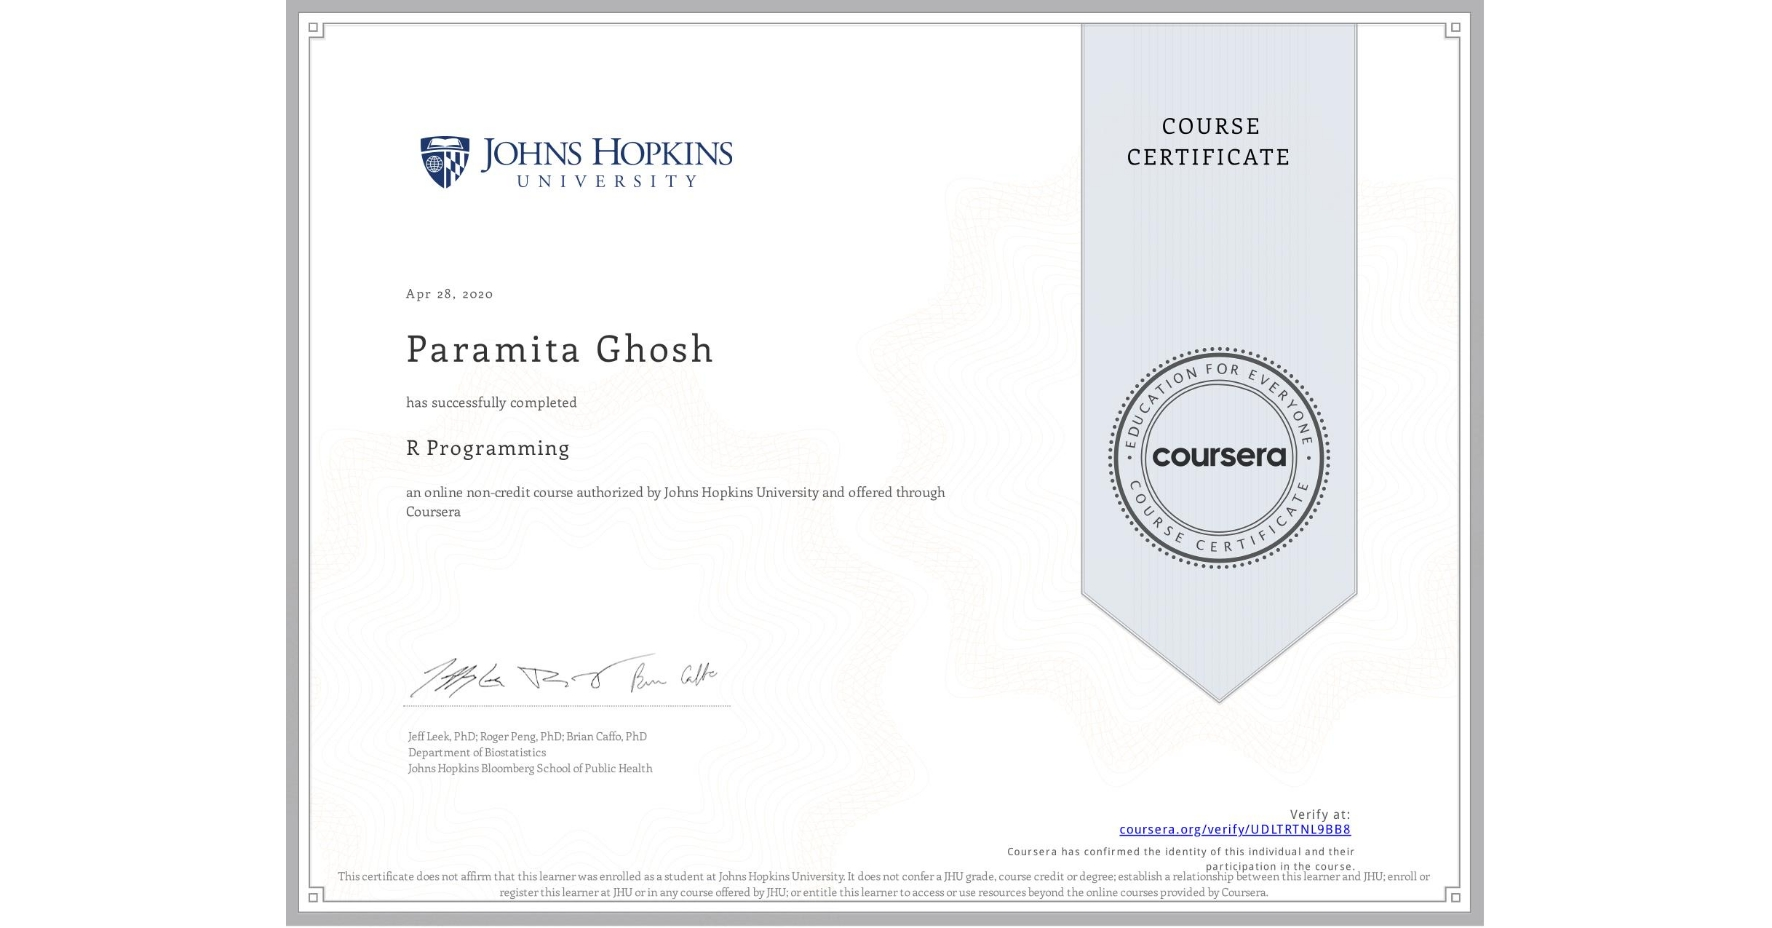 View certificate for Paramita Ghosh, R Programming, an online non-credit course authorized by Johns Hopkins University and offered through Coursera